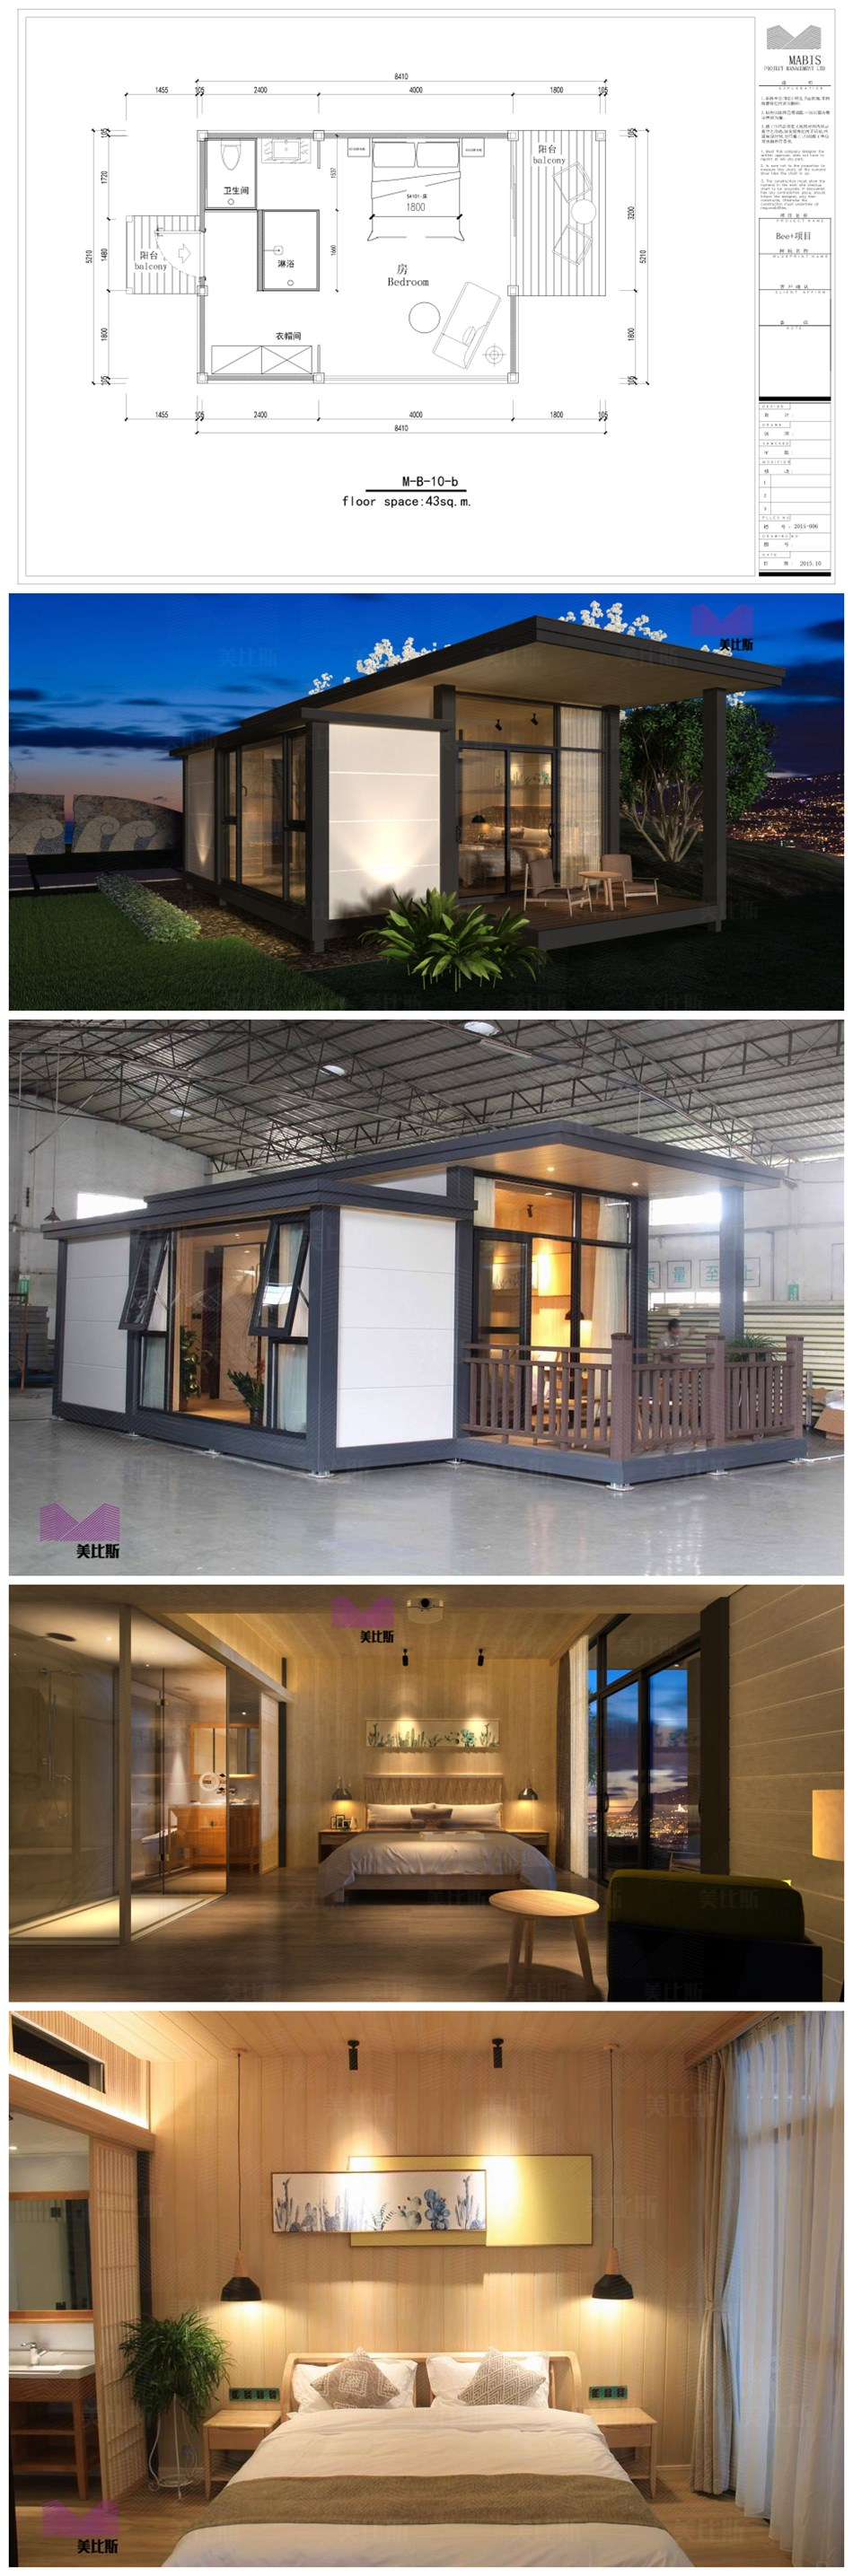 prefab house_modular house_tiny house_resort villa_beach villa_Maldives travel house_luxury room